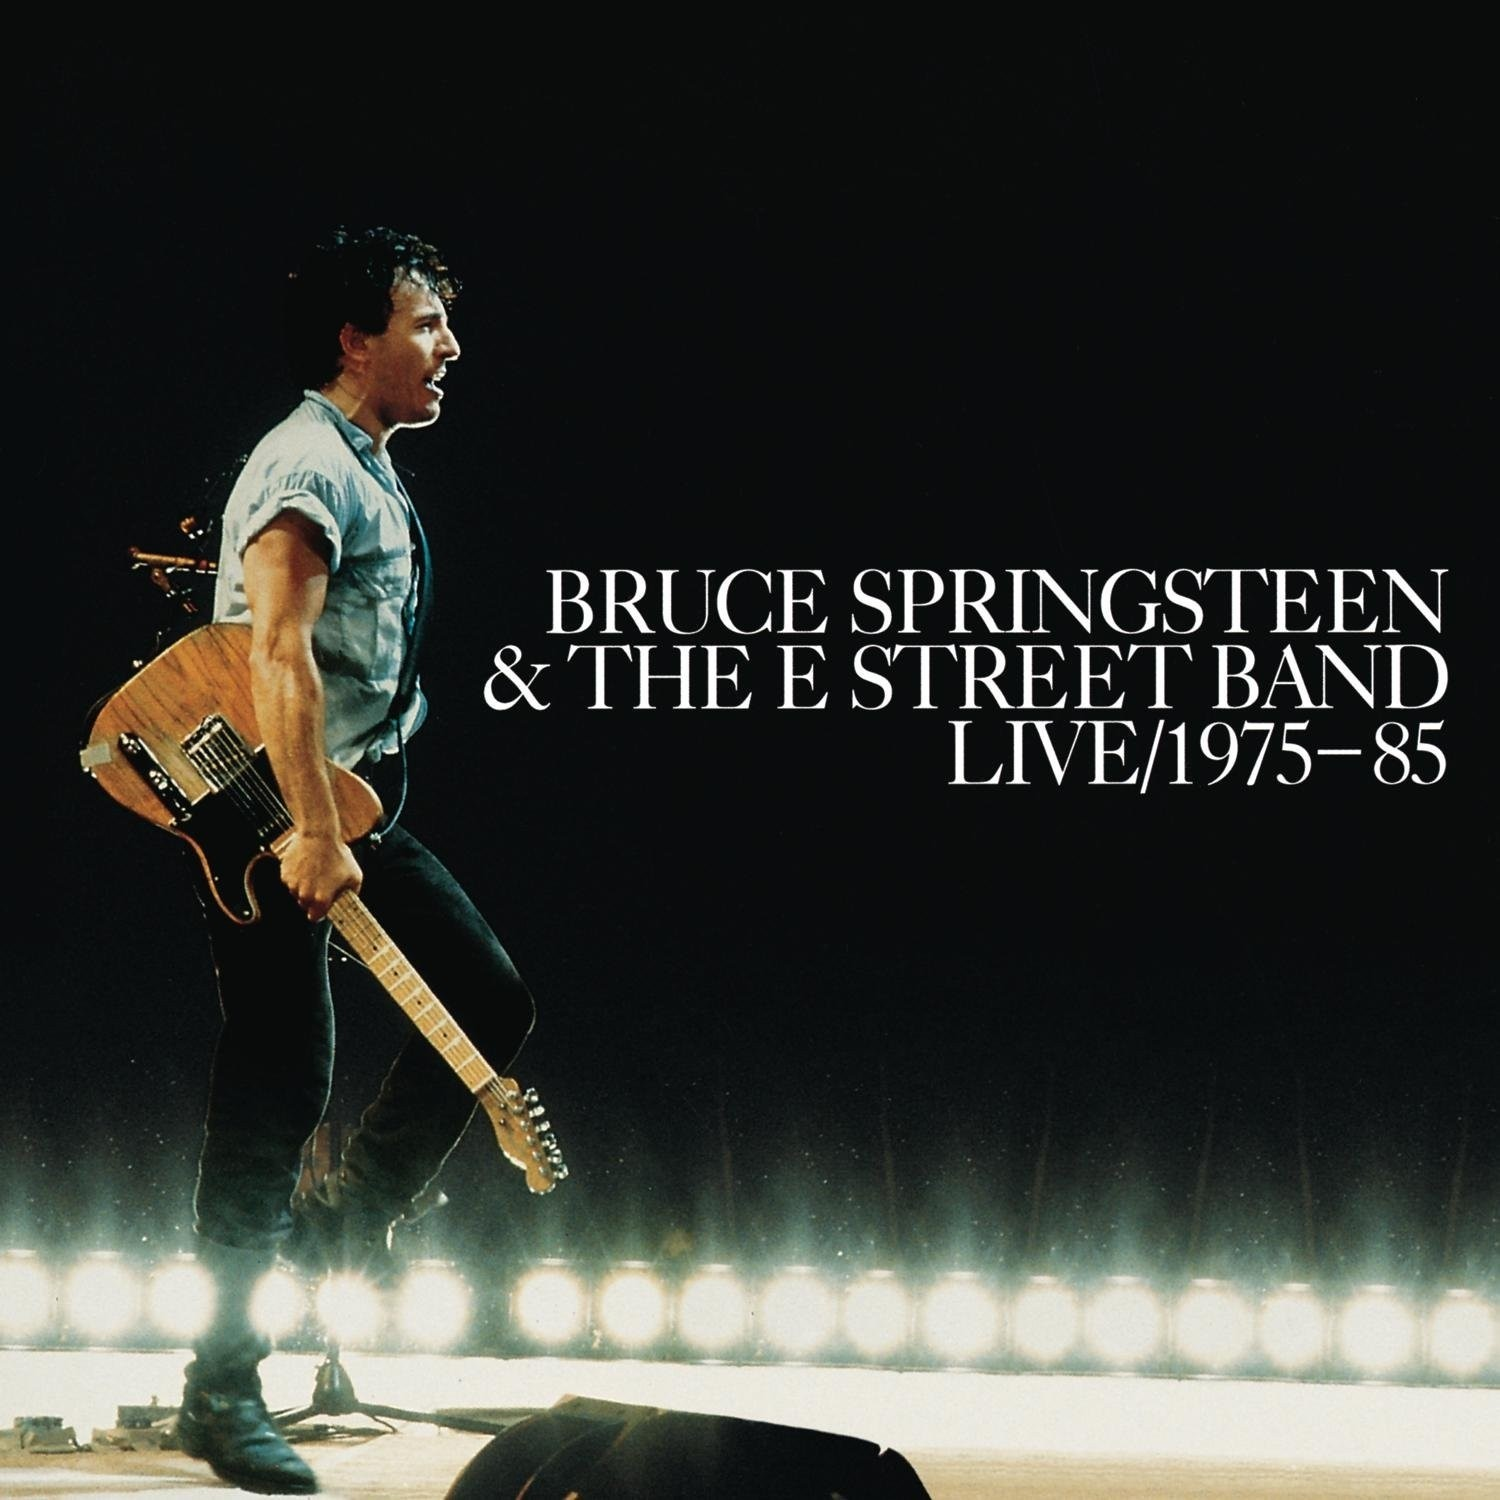 Bruce Springsteen And The E Street Band - Live 1975-85